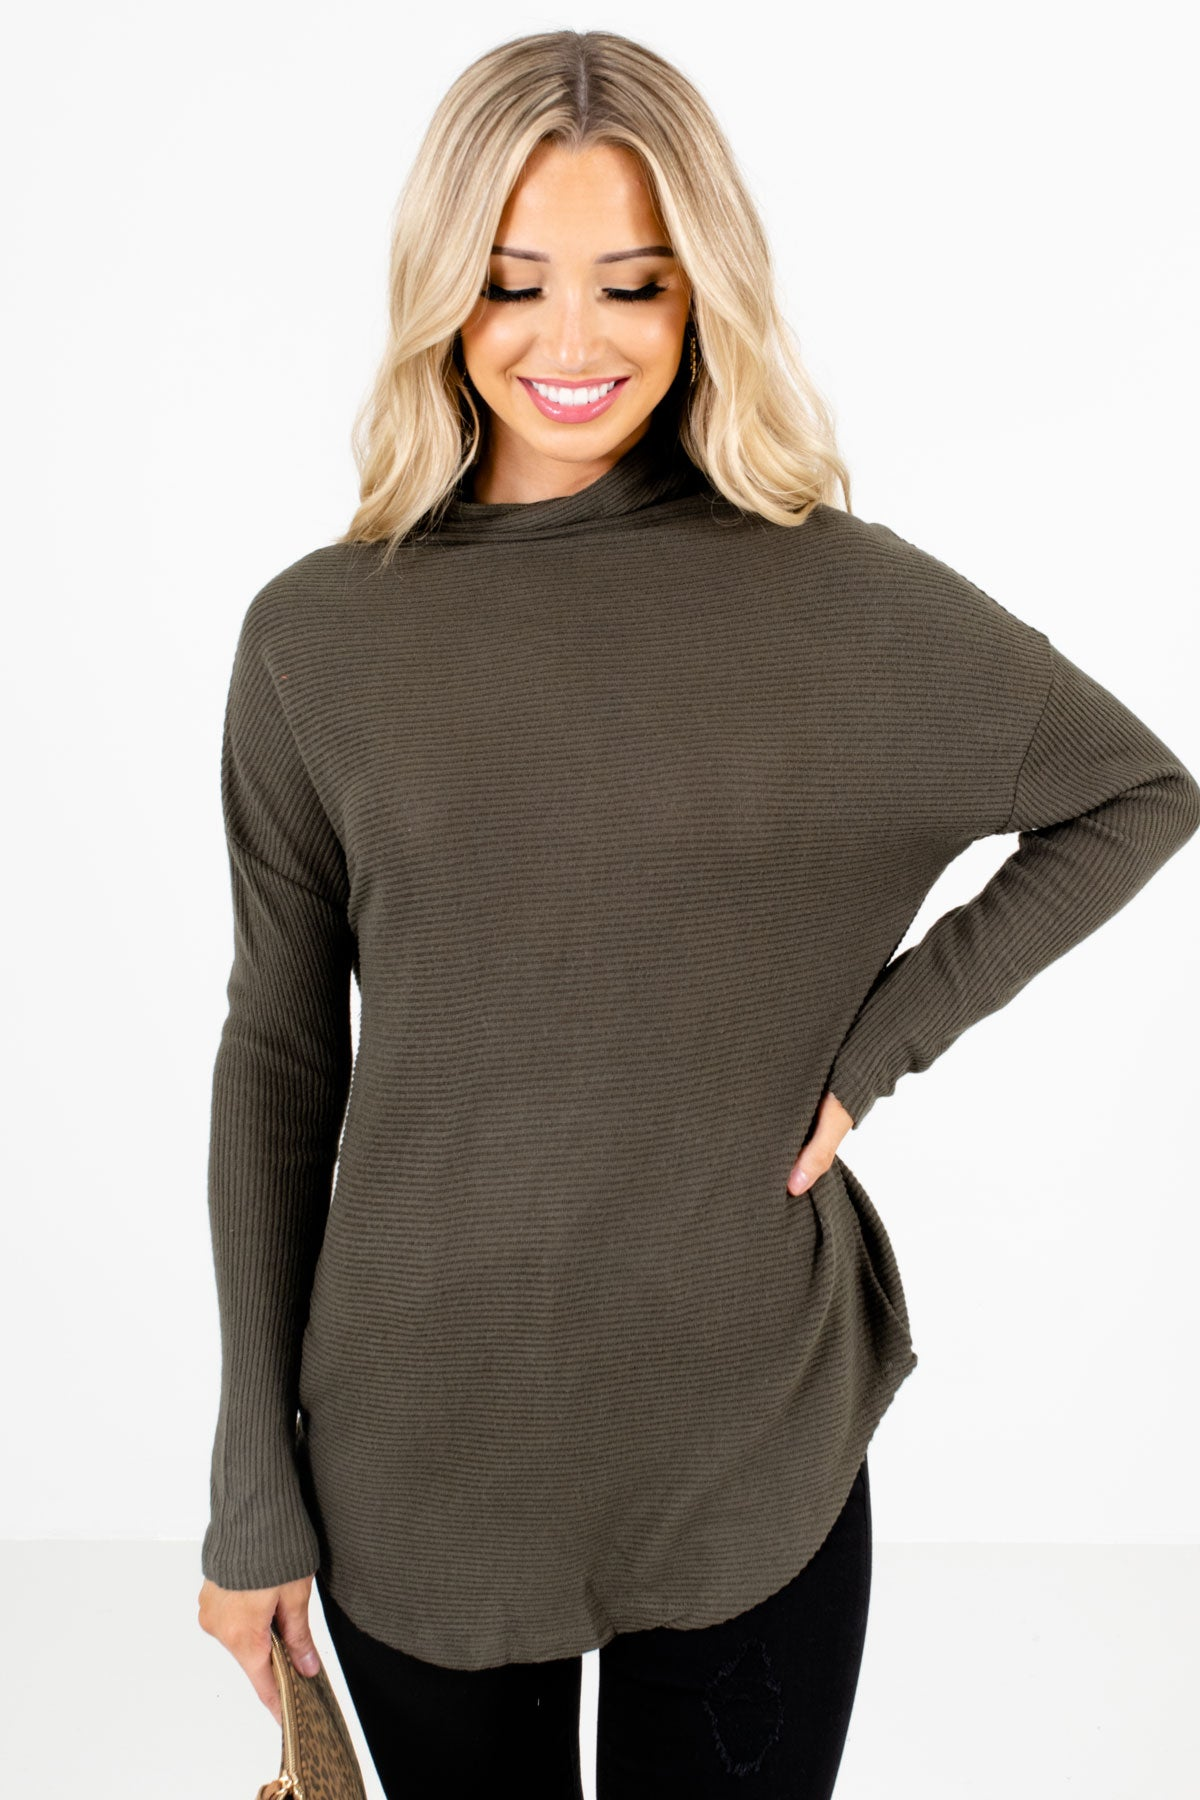 Olive Green Cowl Neck Style Boutique Sweaters for Women